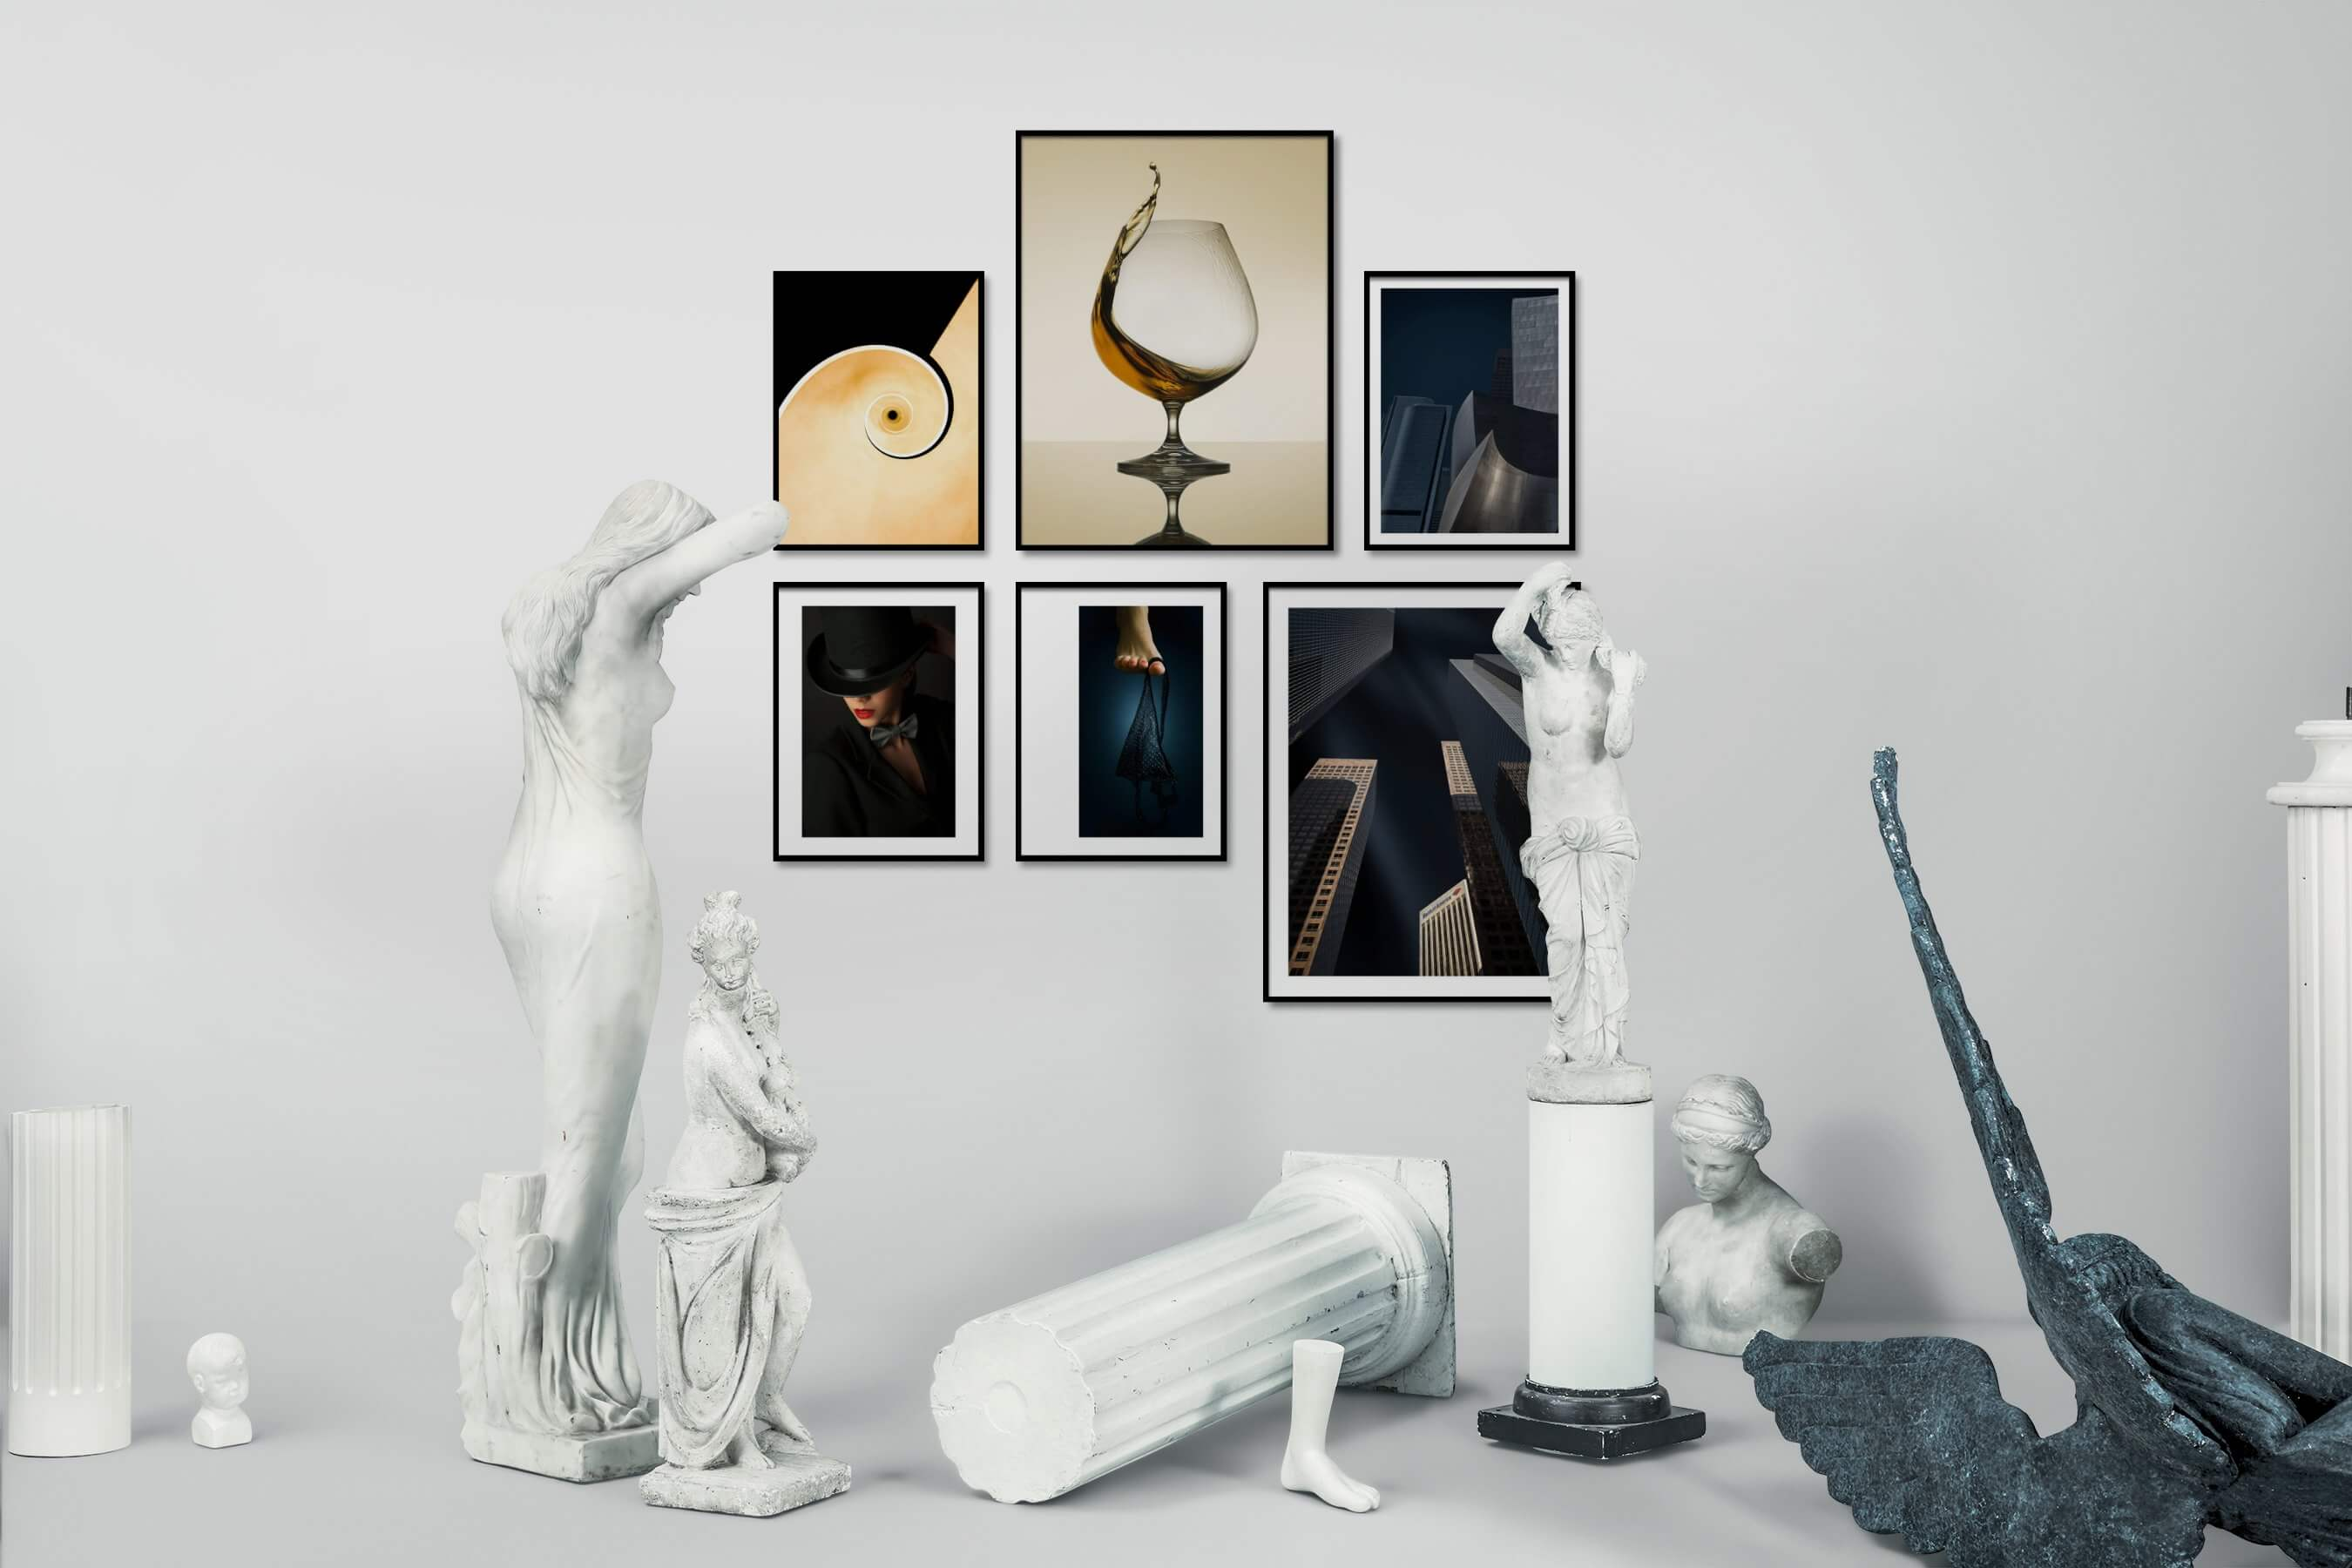 Gallery wall idea with six framed pictures arranged on a wall depicting For the Minimalist, Fashion & Beauty, For the Moderate, City Life, and Americana